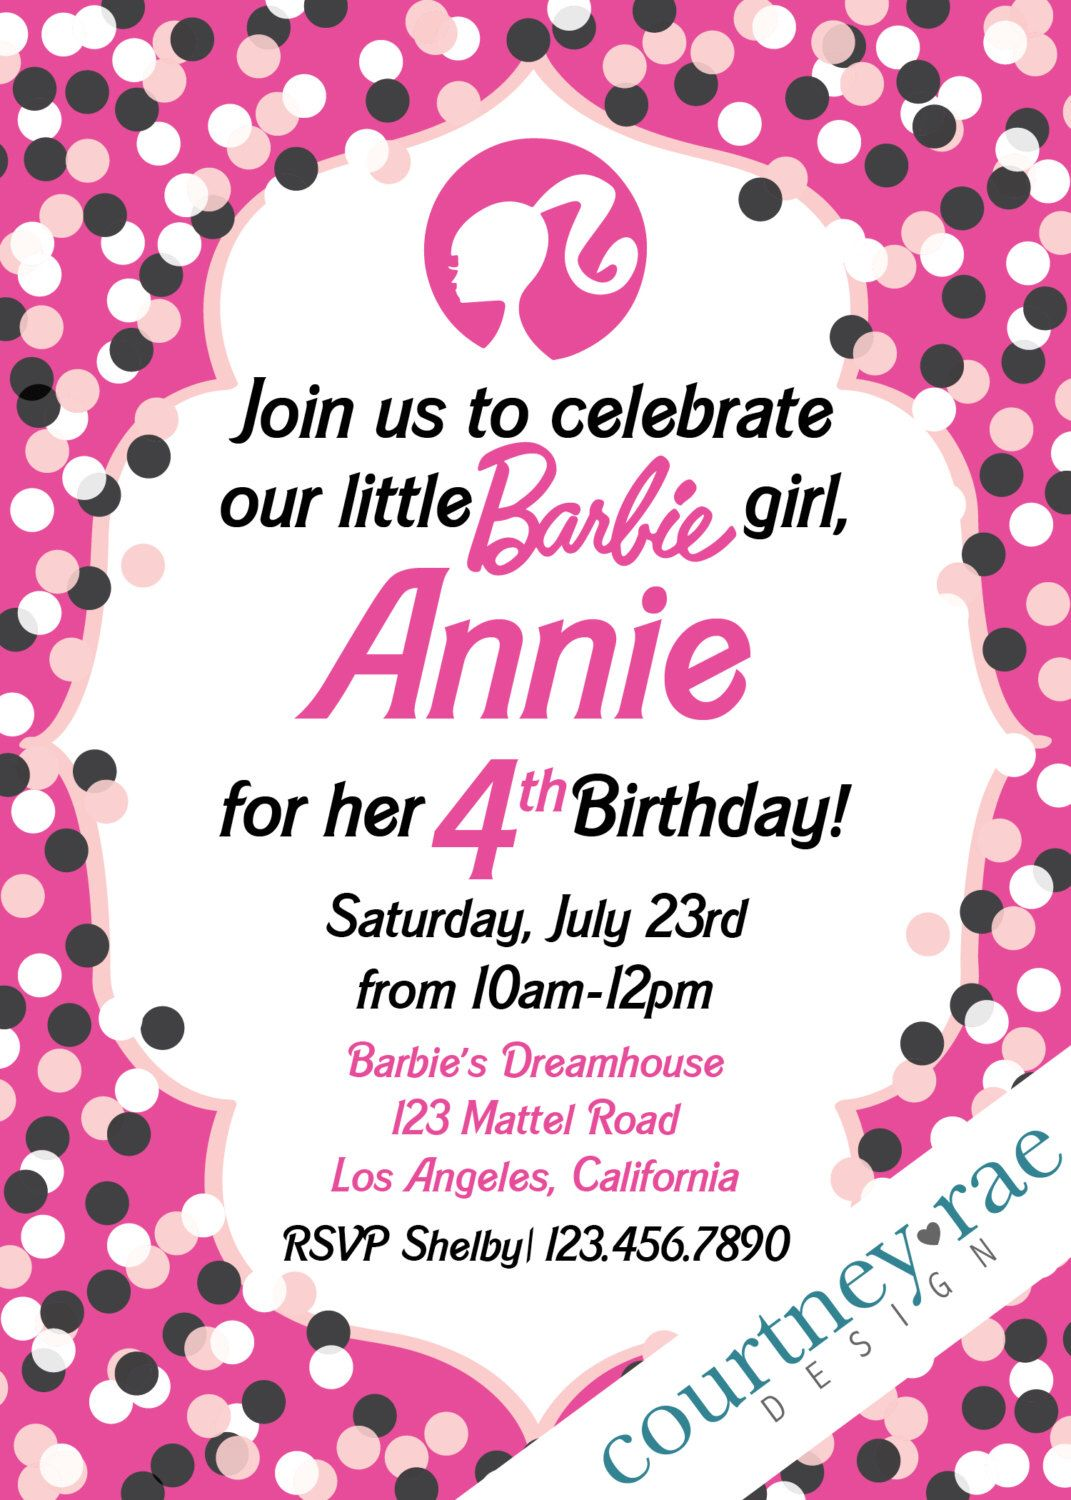 Barbie Birthday Party Invitations by CourtneyRaeDesign on Etsy https ...